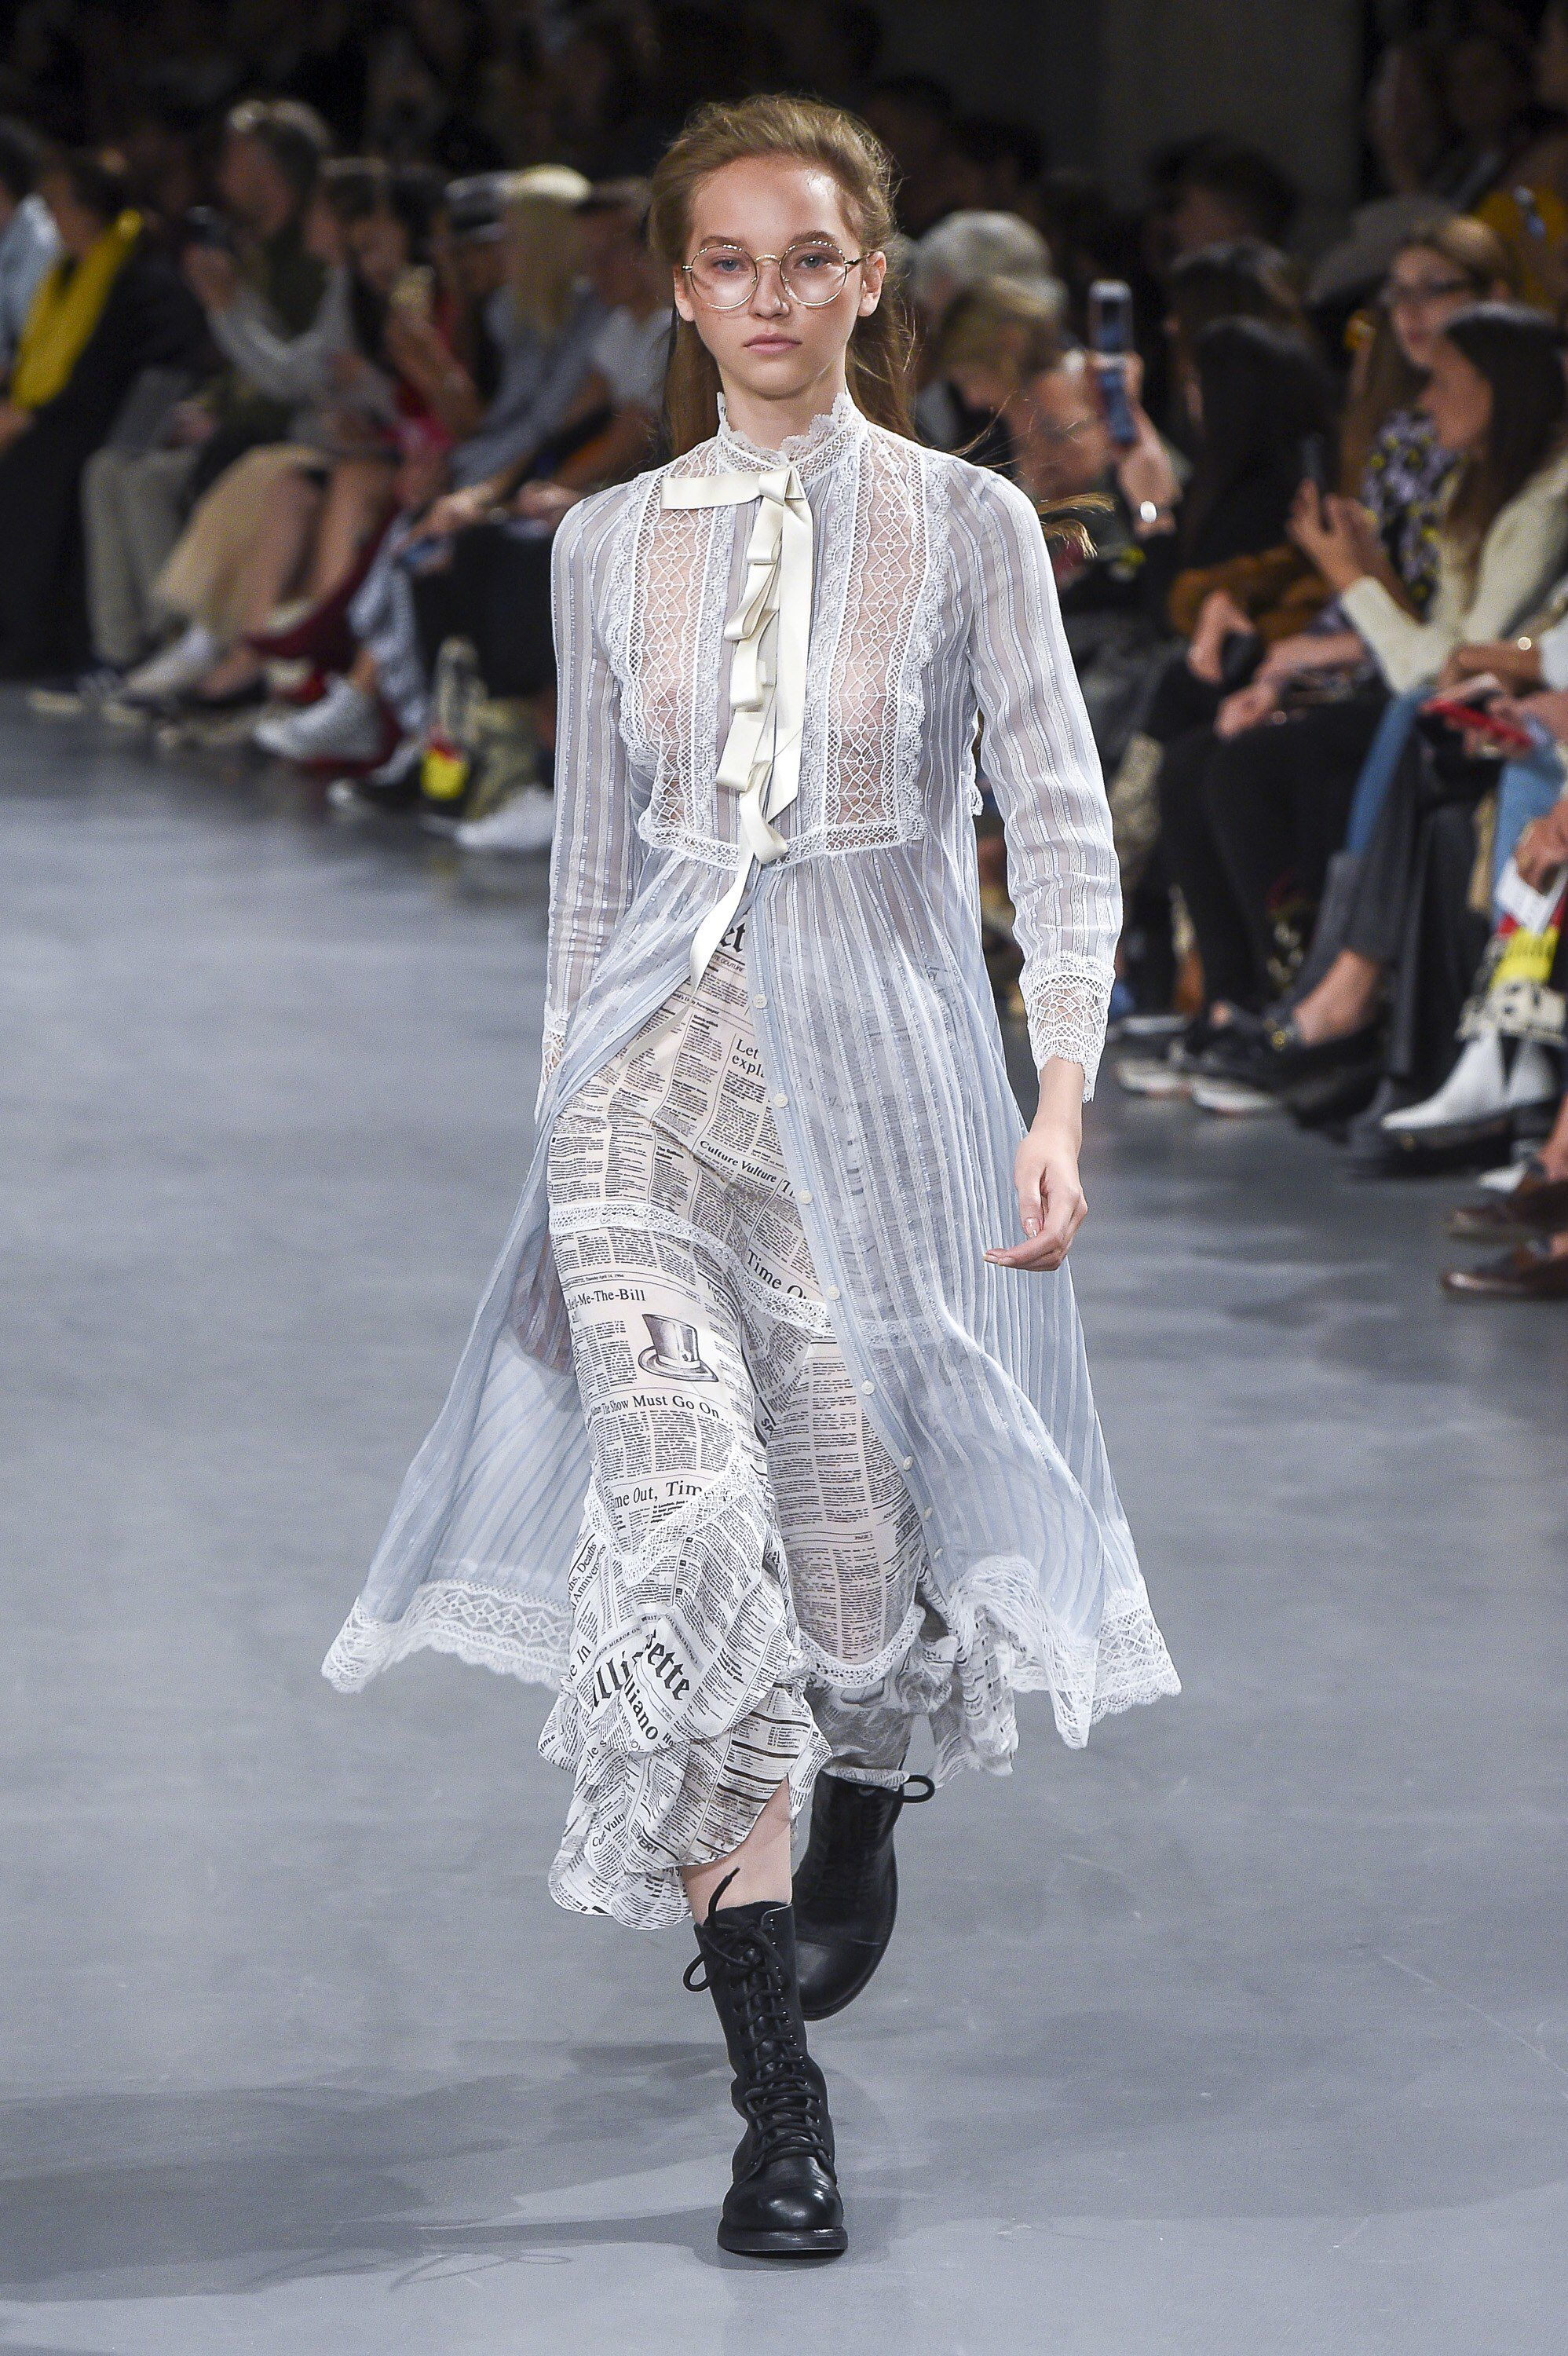 65edaa323a428a John Galliano Spring 2019 Ready-to-Wear Fashion Show Collection: See the  complete John Galliano Spring 2019 Ready-to-Wear collection. Look 7